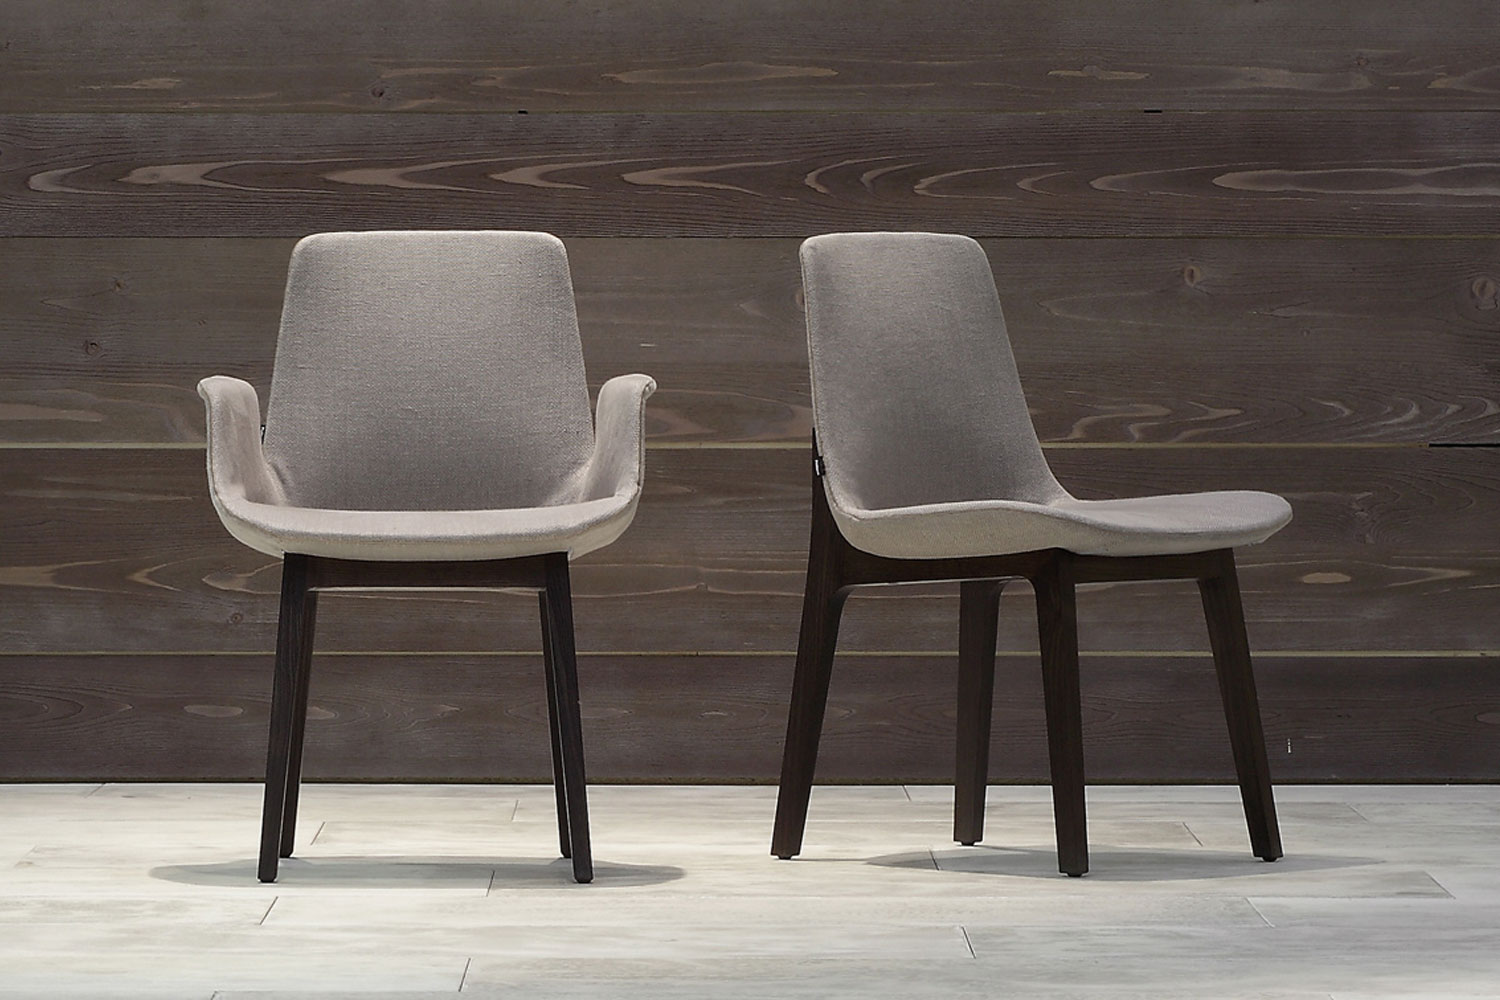 floor chairs singapore ez lift chair ventura by jean-marie massaud for poliform | space furniture